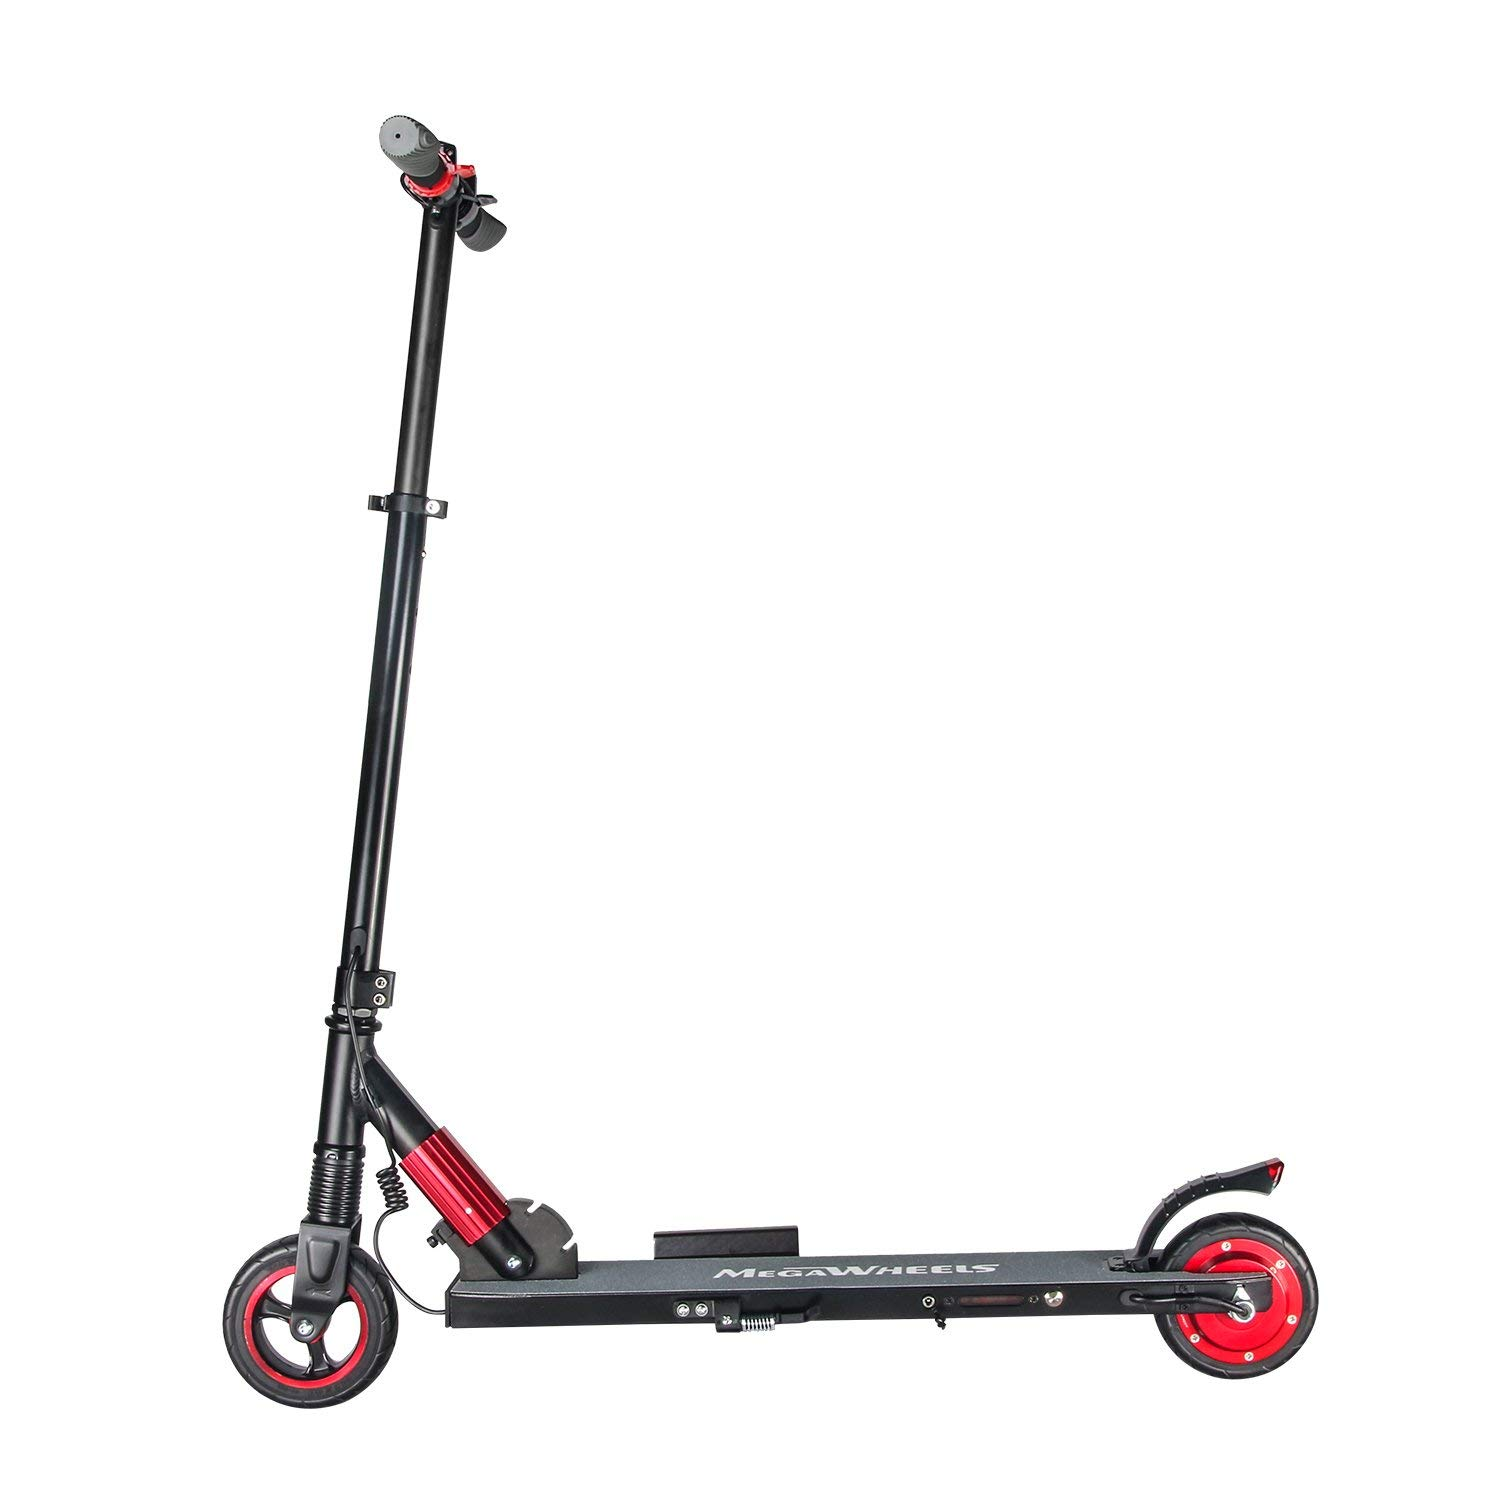 Buy Per Newly Electric Scooter Ultra-Lightweight Sturdy